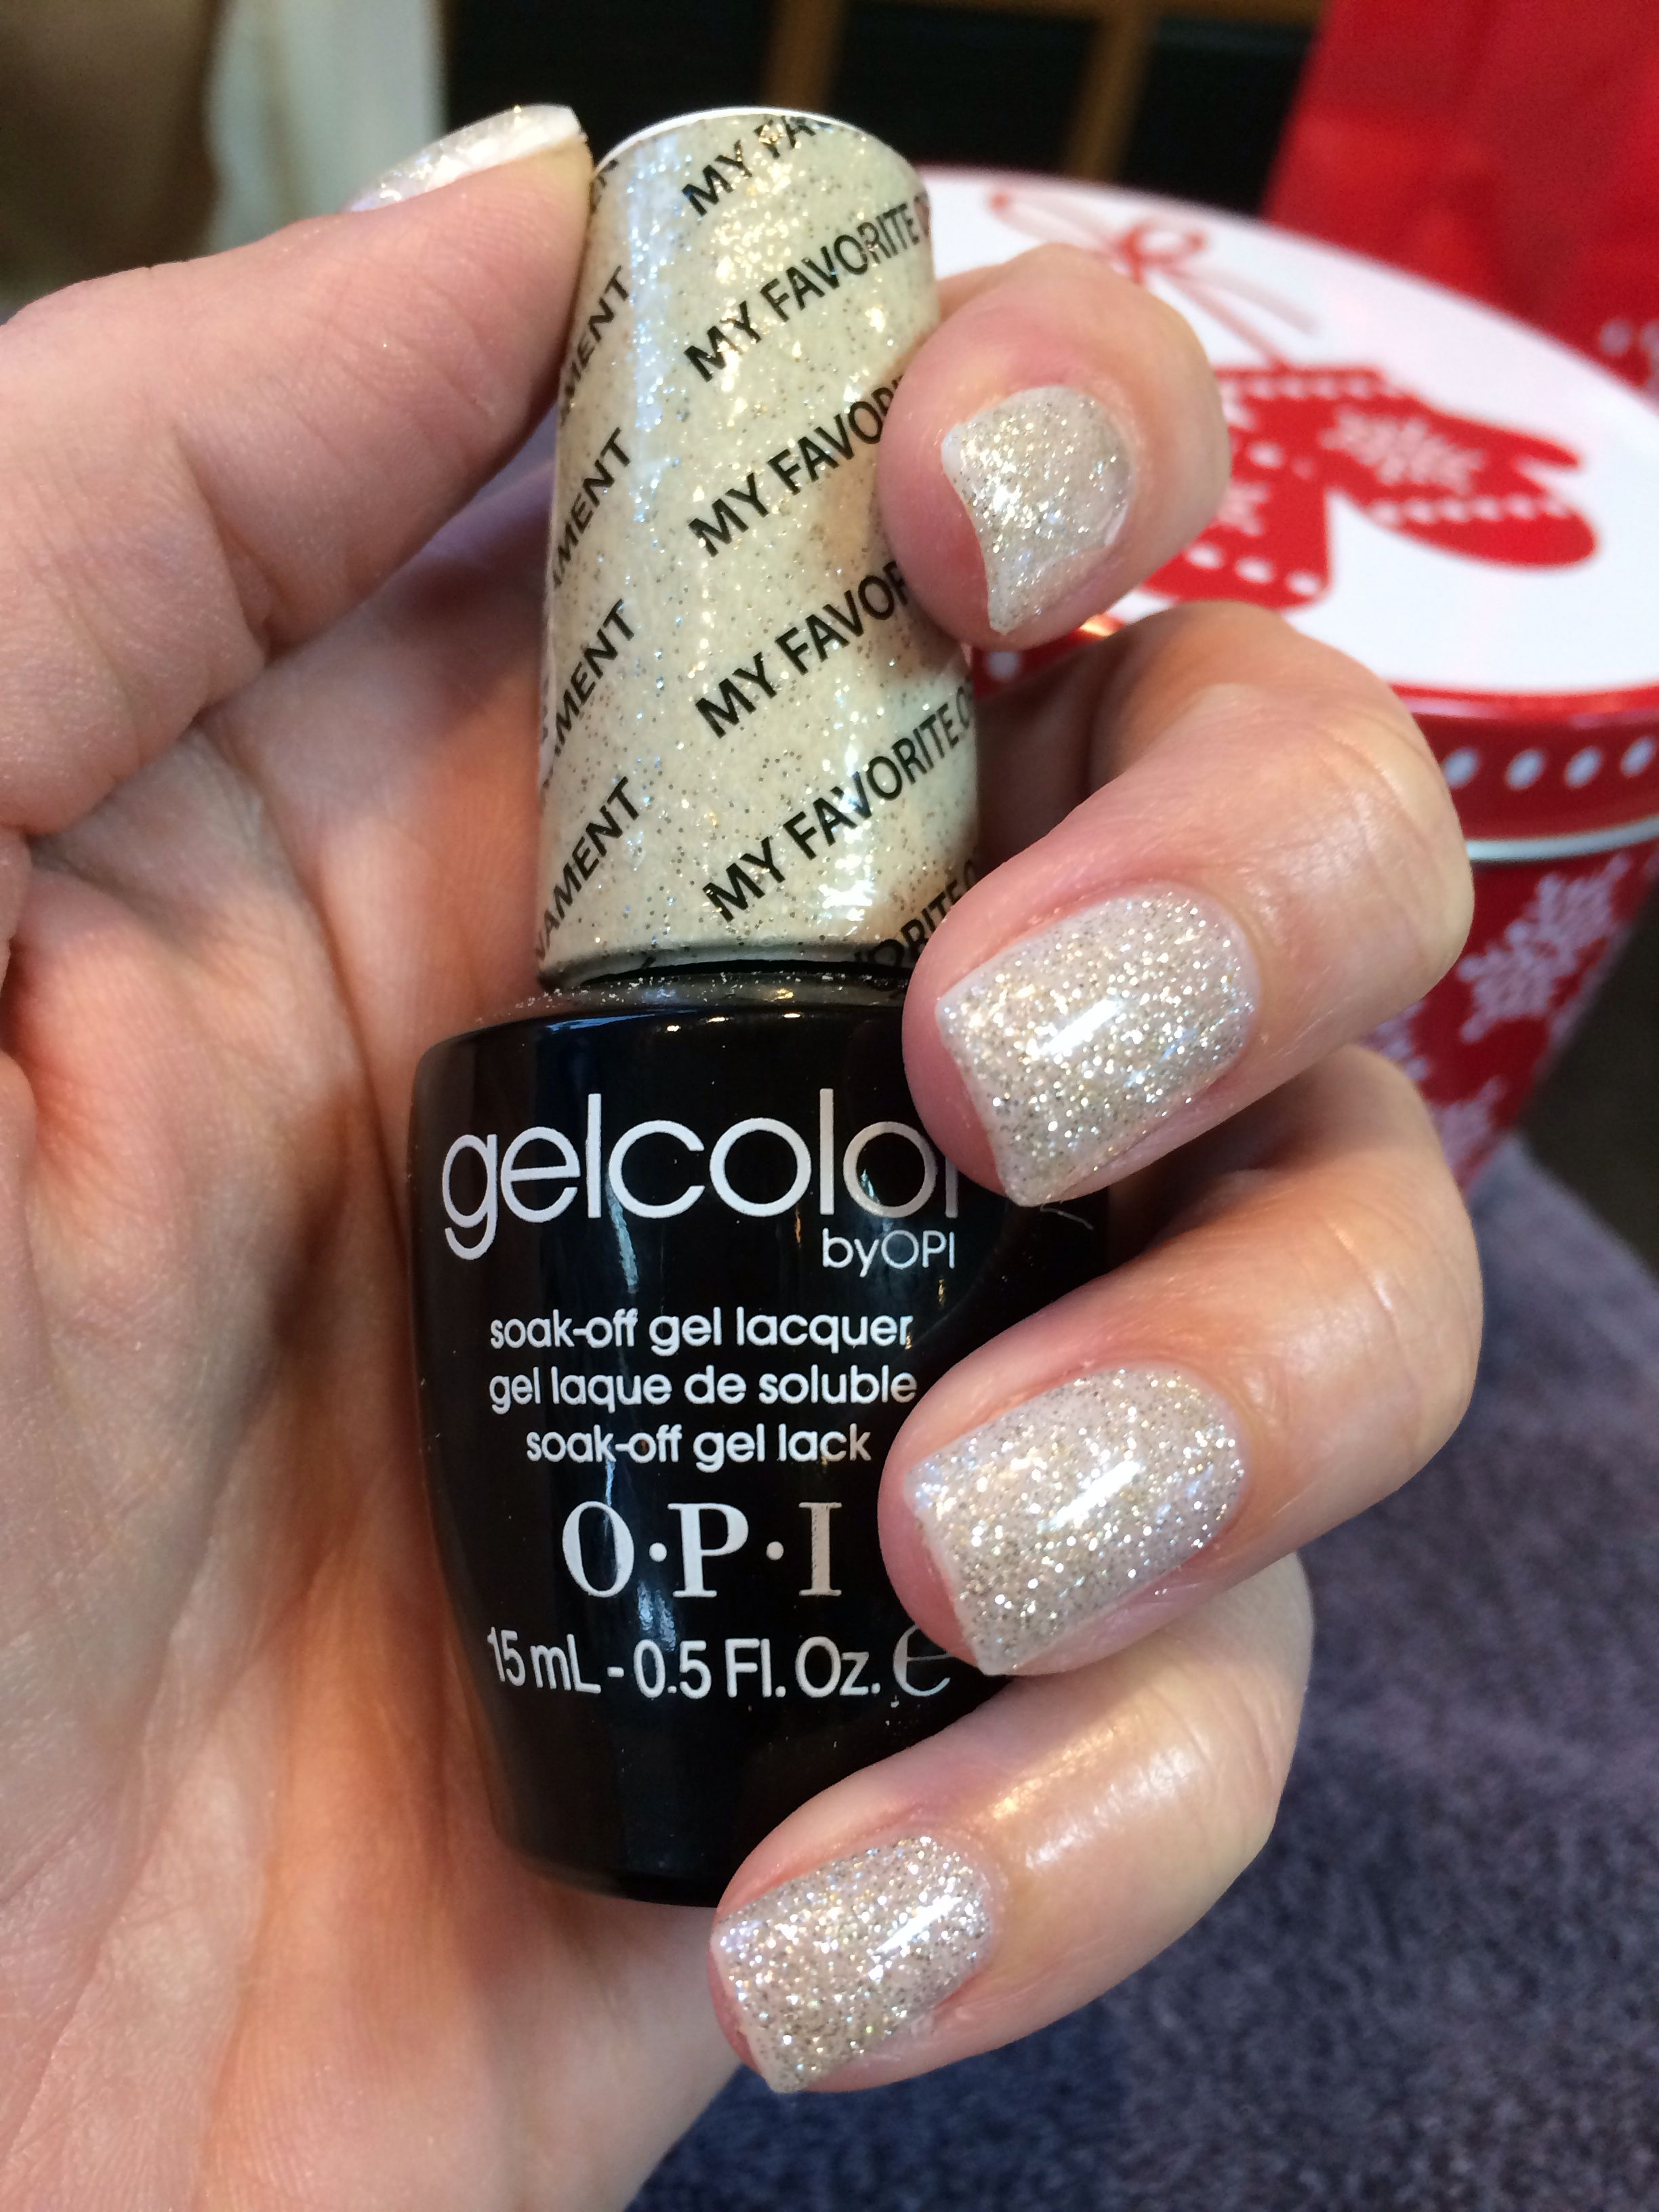 New gel nails my favorite ornament by opi | Nail designs & makeup ...